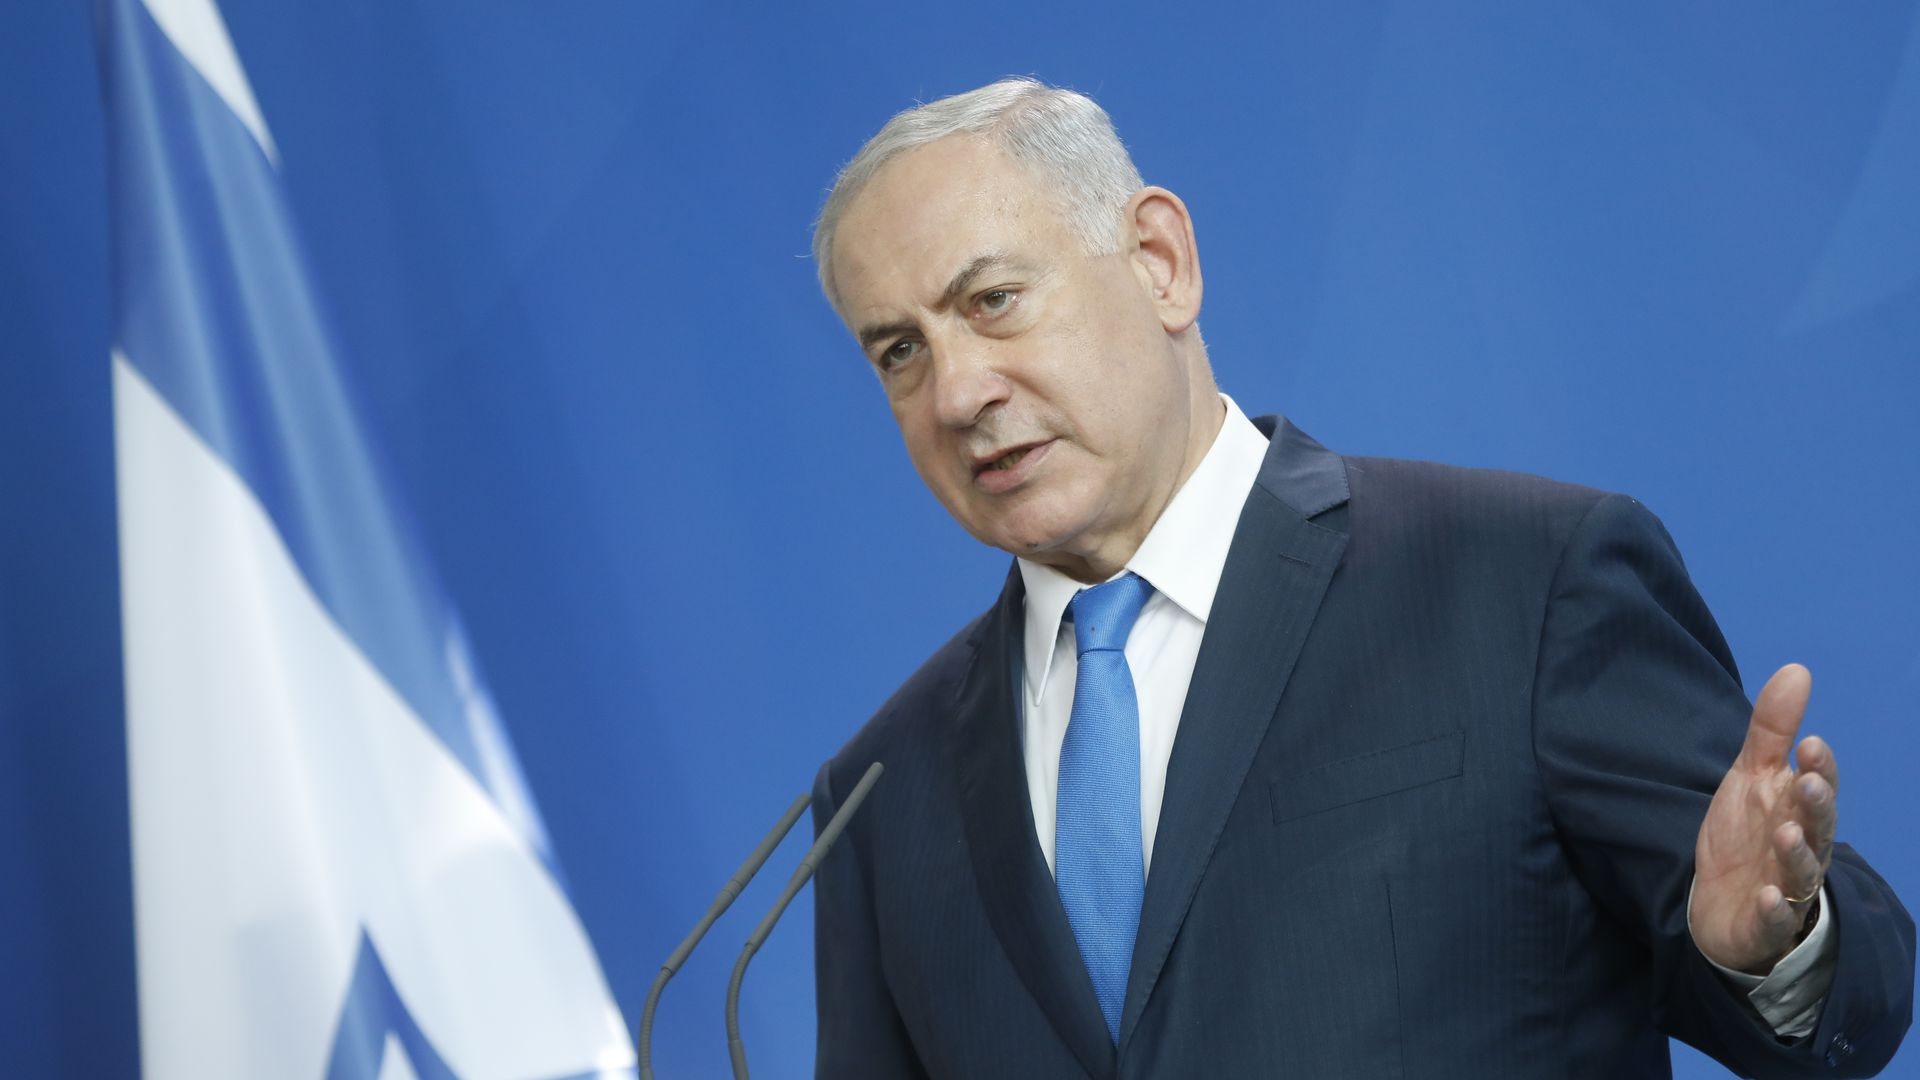 Israel's Prime Minister Benjamin Netanyahu. Photo: Michele Tantussi/Getty Images